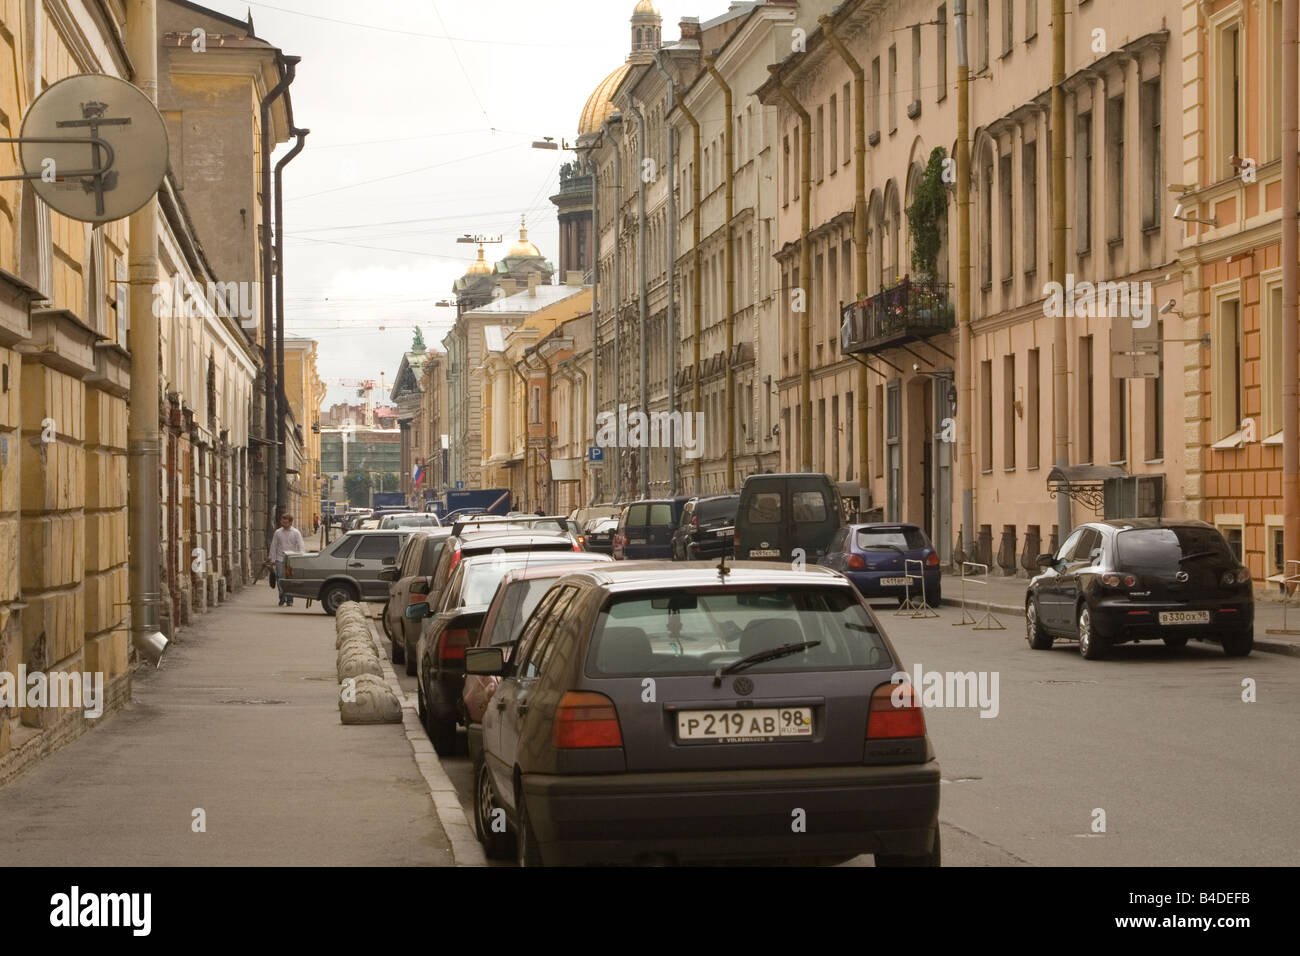 Street in St. Petersburg is lined with parked vehicles. - Stock Image